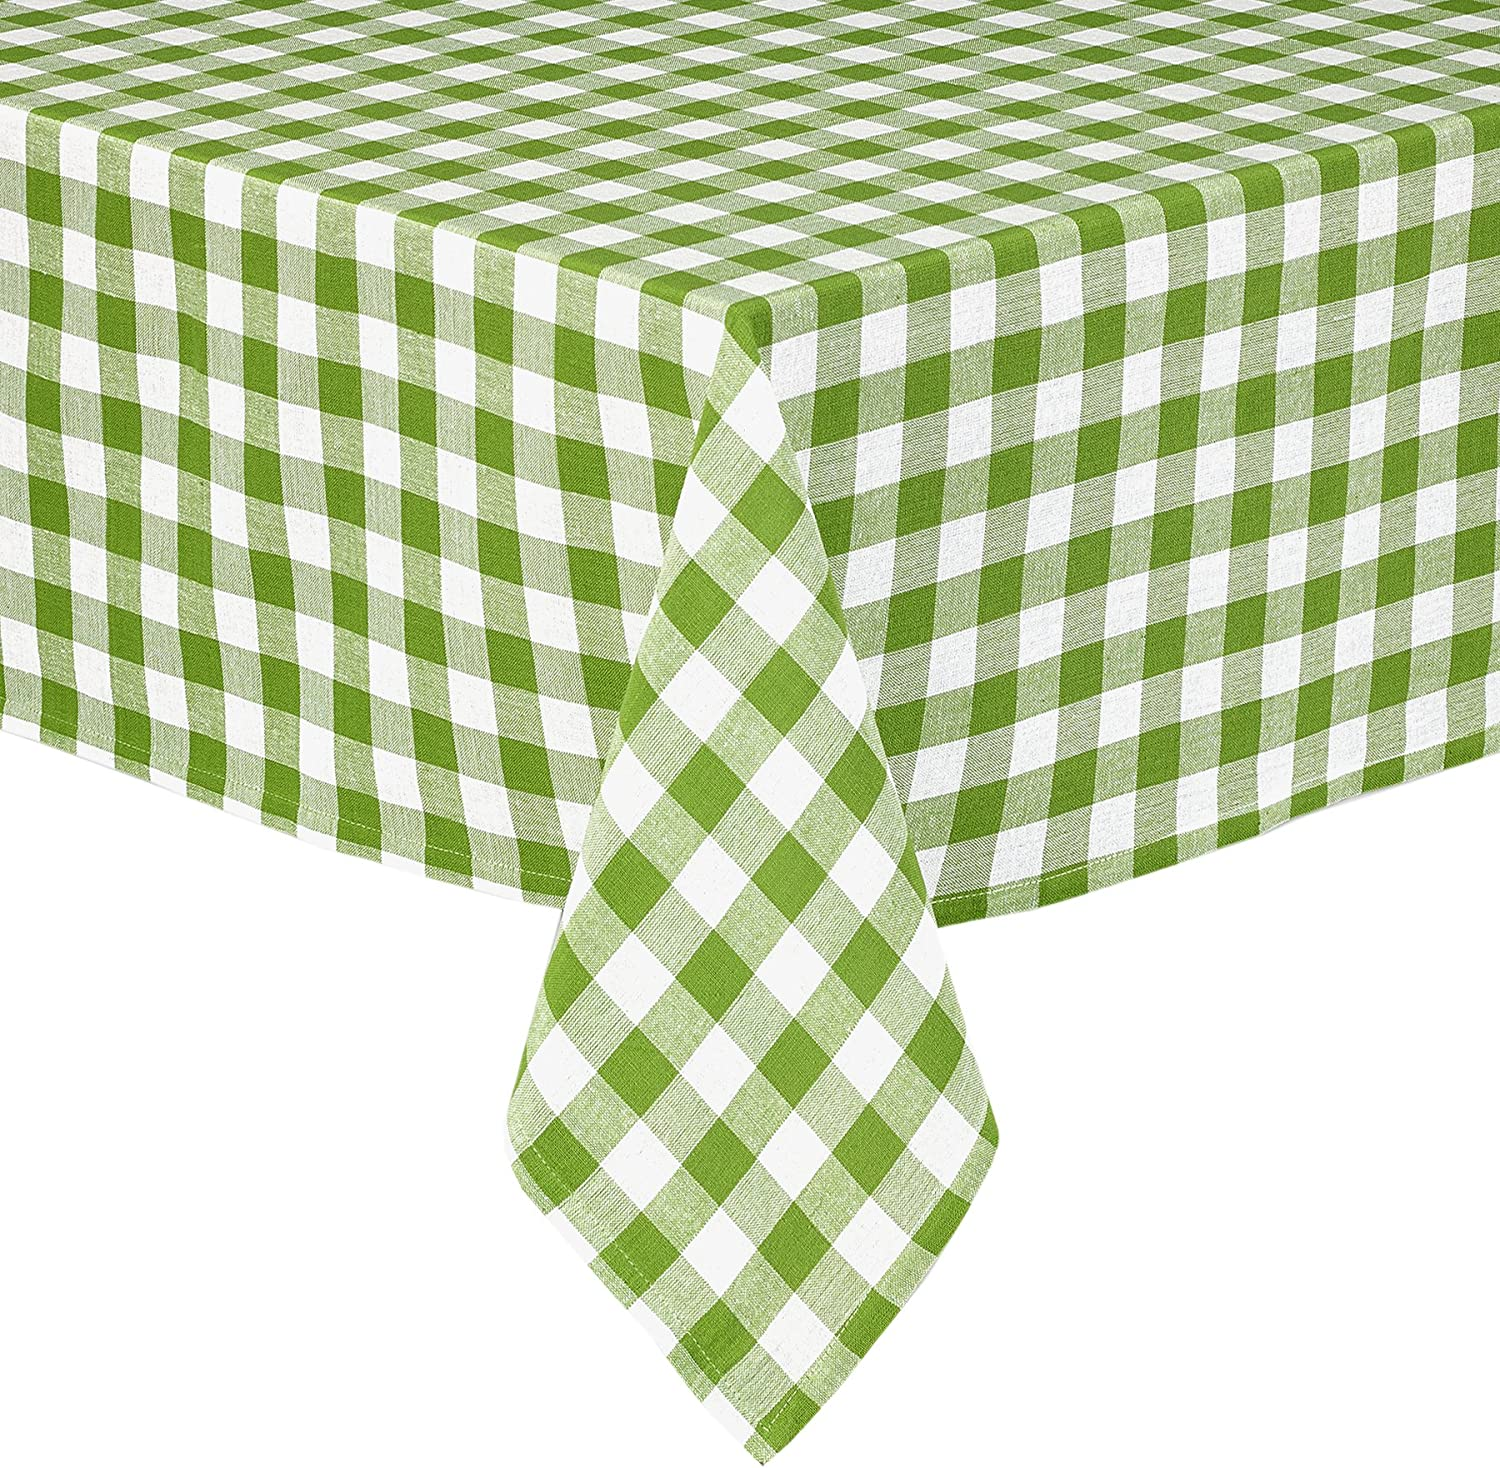 Buffalo Gingham Check Indoor/Outdoor Casual Cotton Tablecloth, Buffalo Plaid 100% Cotton Weave Kitchen, Patio and Dining Room Tablecloth 70 Round, Apple Green